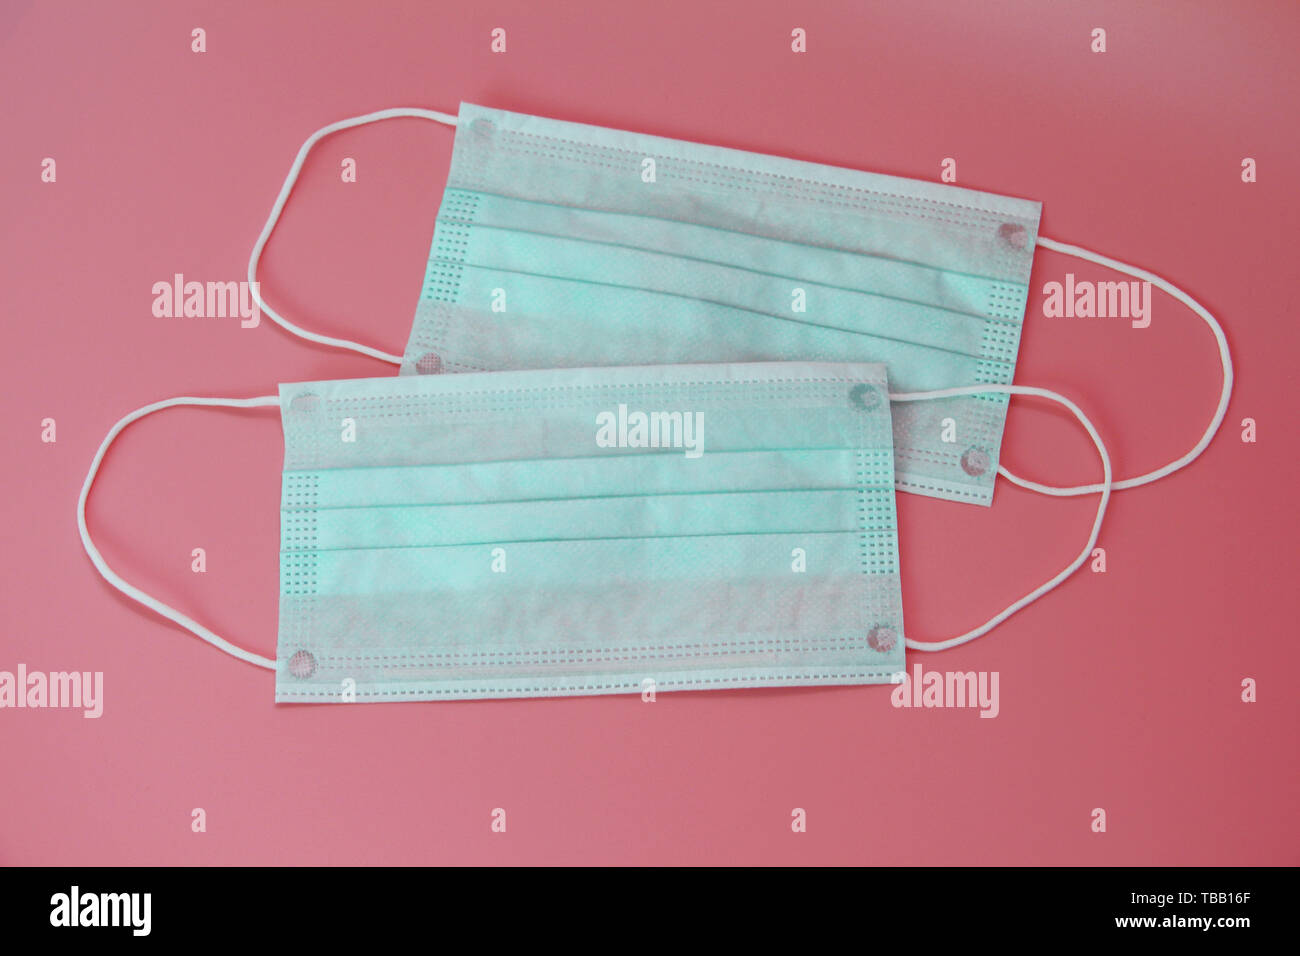 Two medical masks on a pink background. Disposable medical masks. There is not anyone. - Stock Image